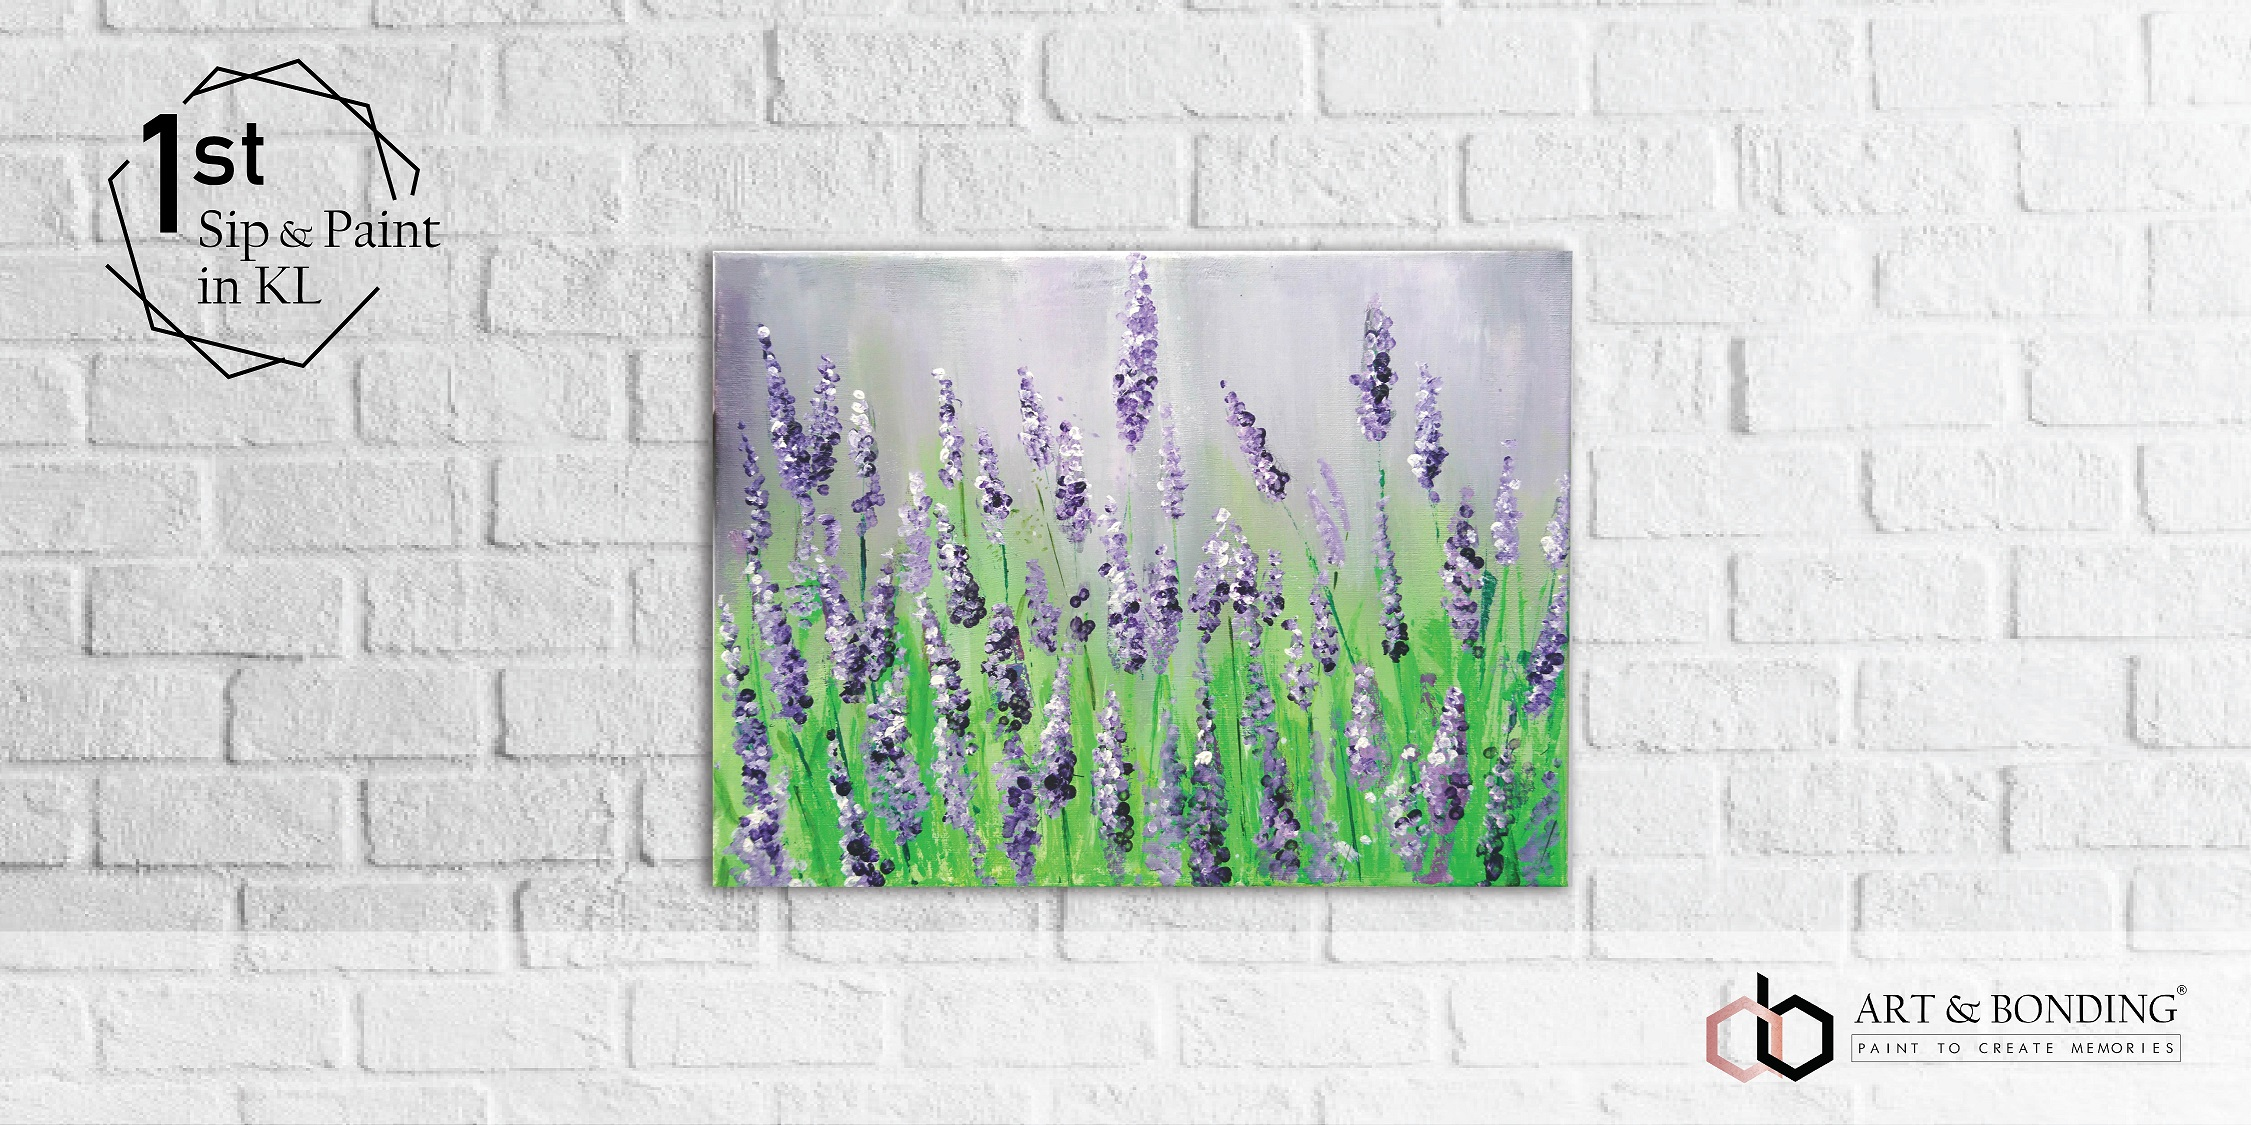 painting-family-acrylic-activiy-familygoals-sunday-lavender-field-outing-01